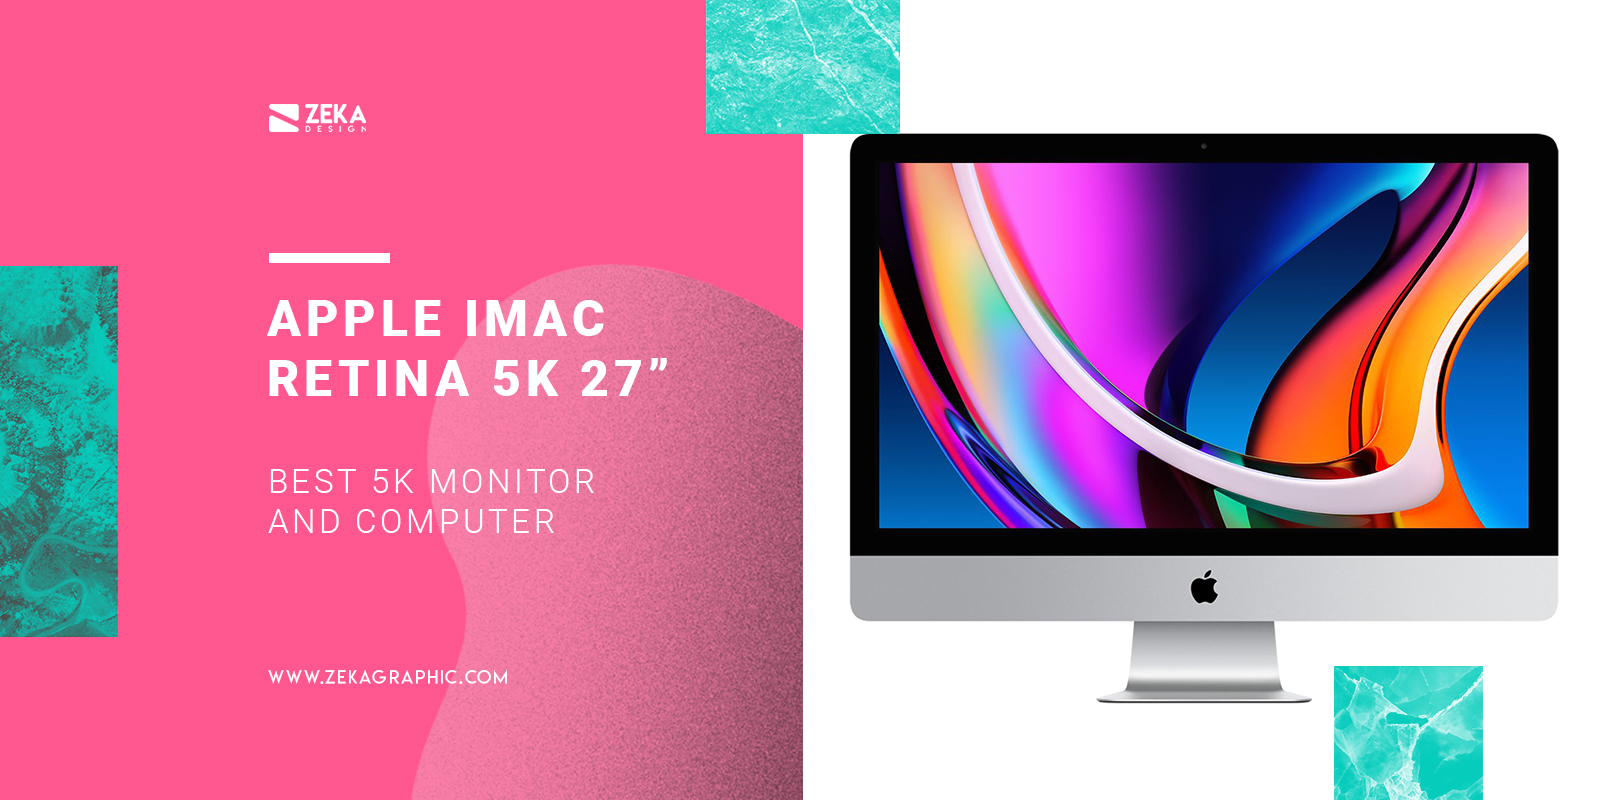 Apple iMac with Retina 5K 27-inch Best 5K Monitor and Computer for designers